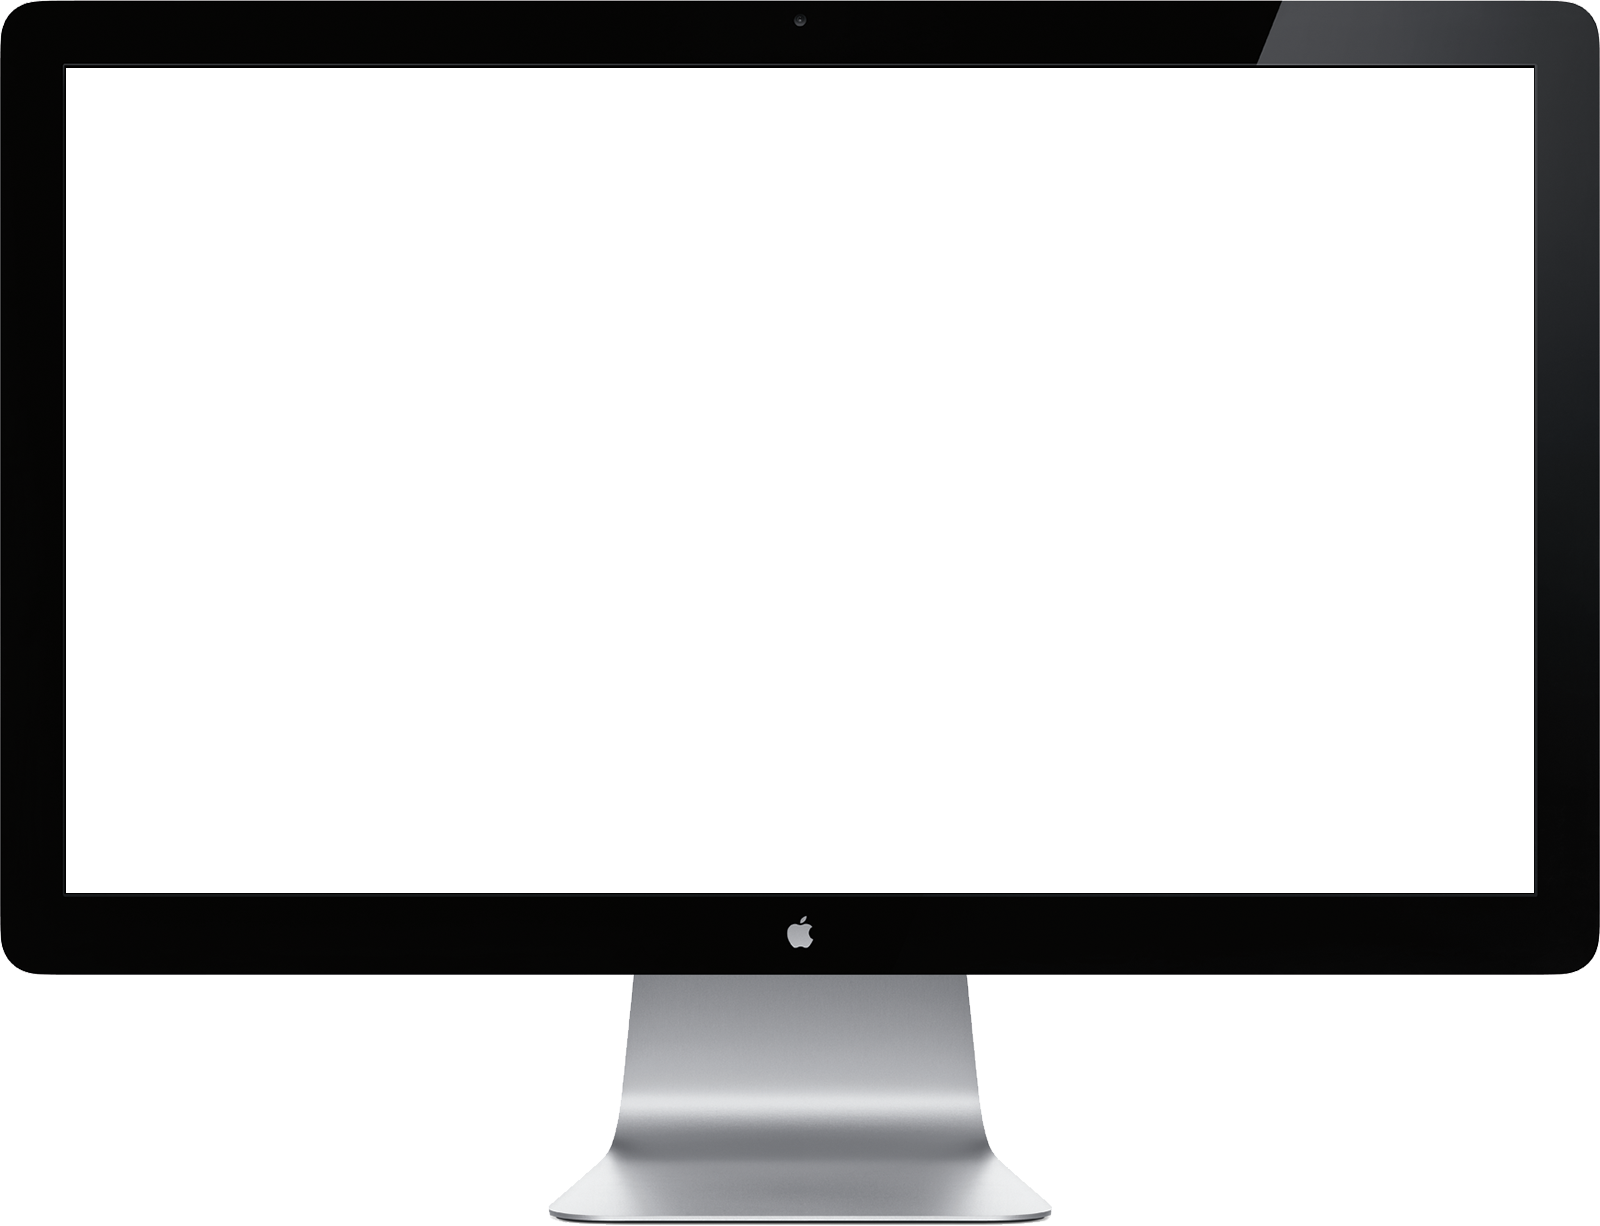 iMac screen frame